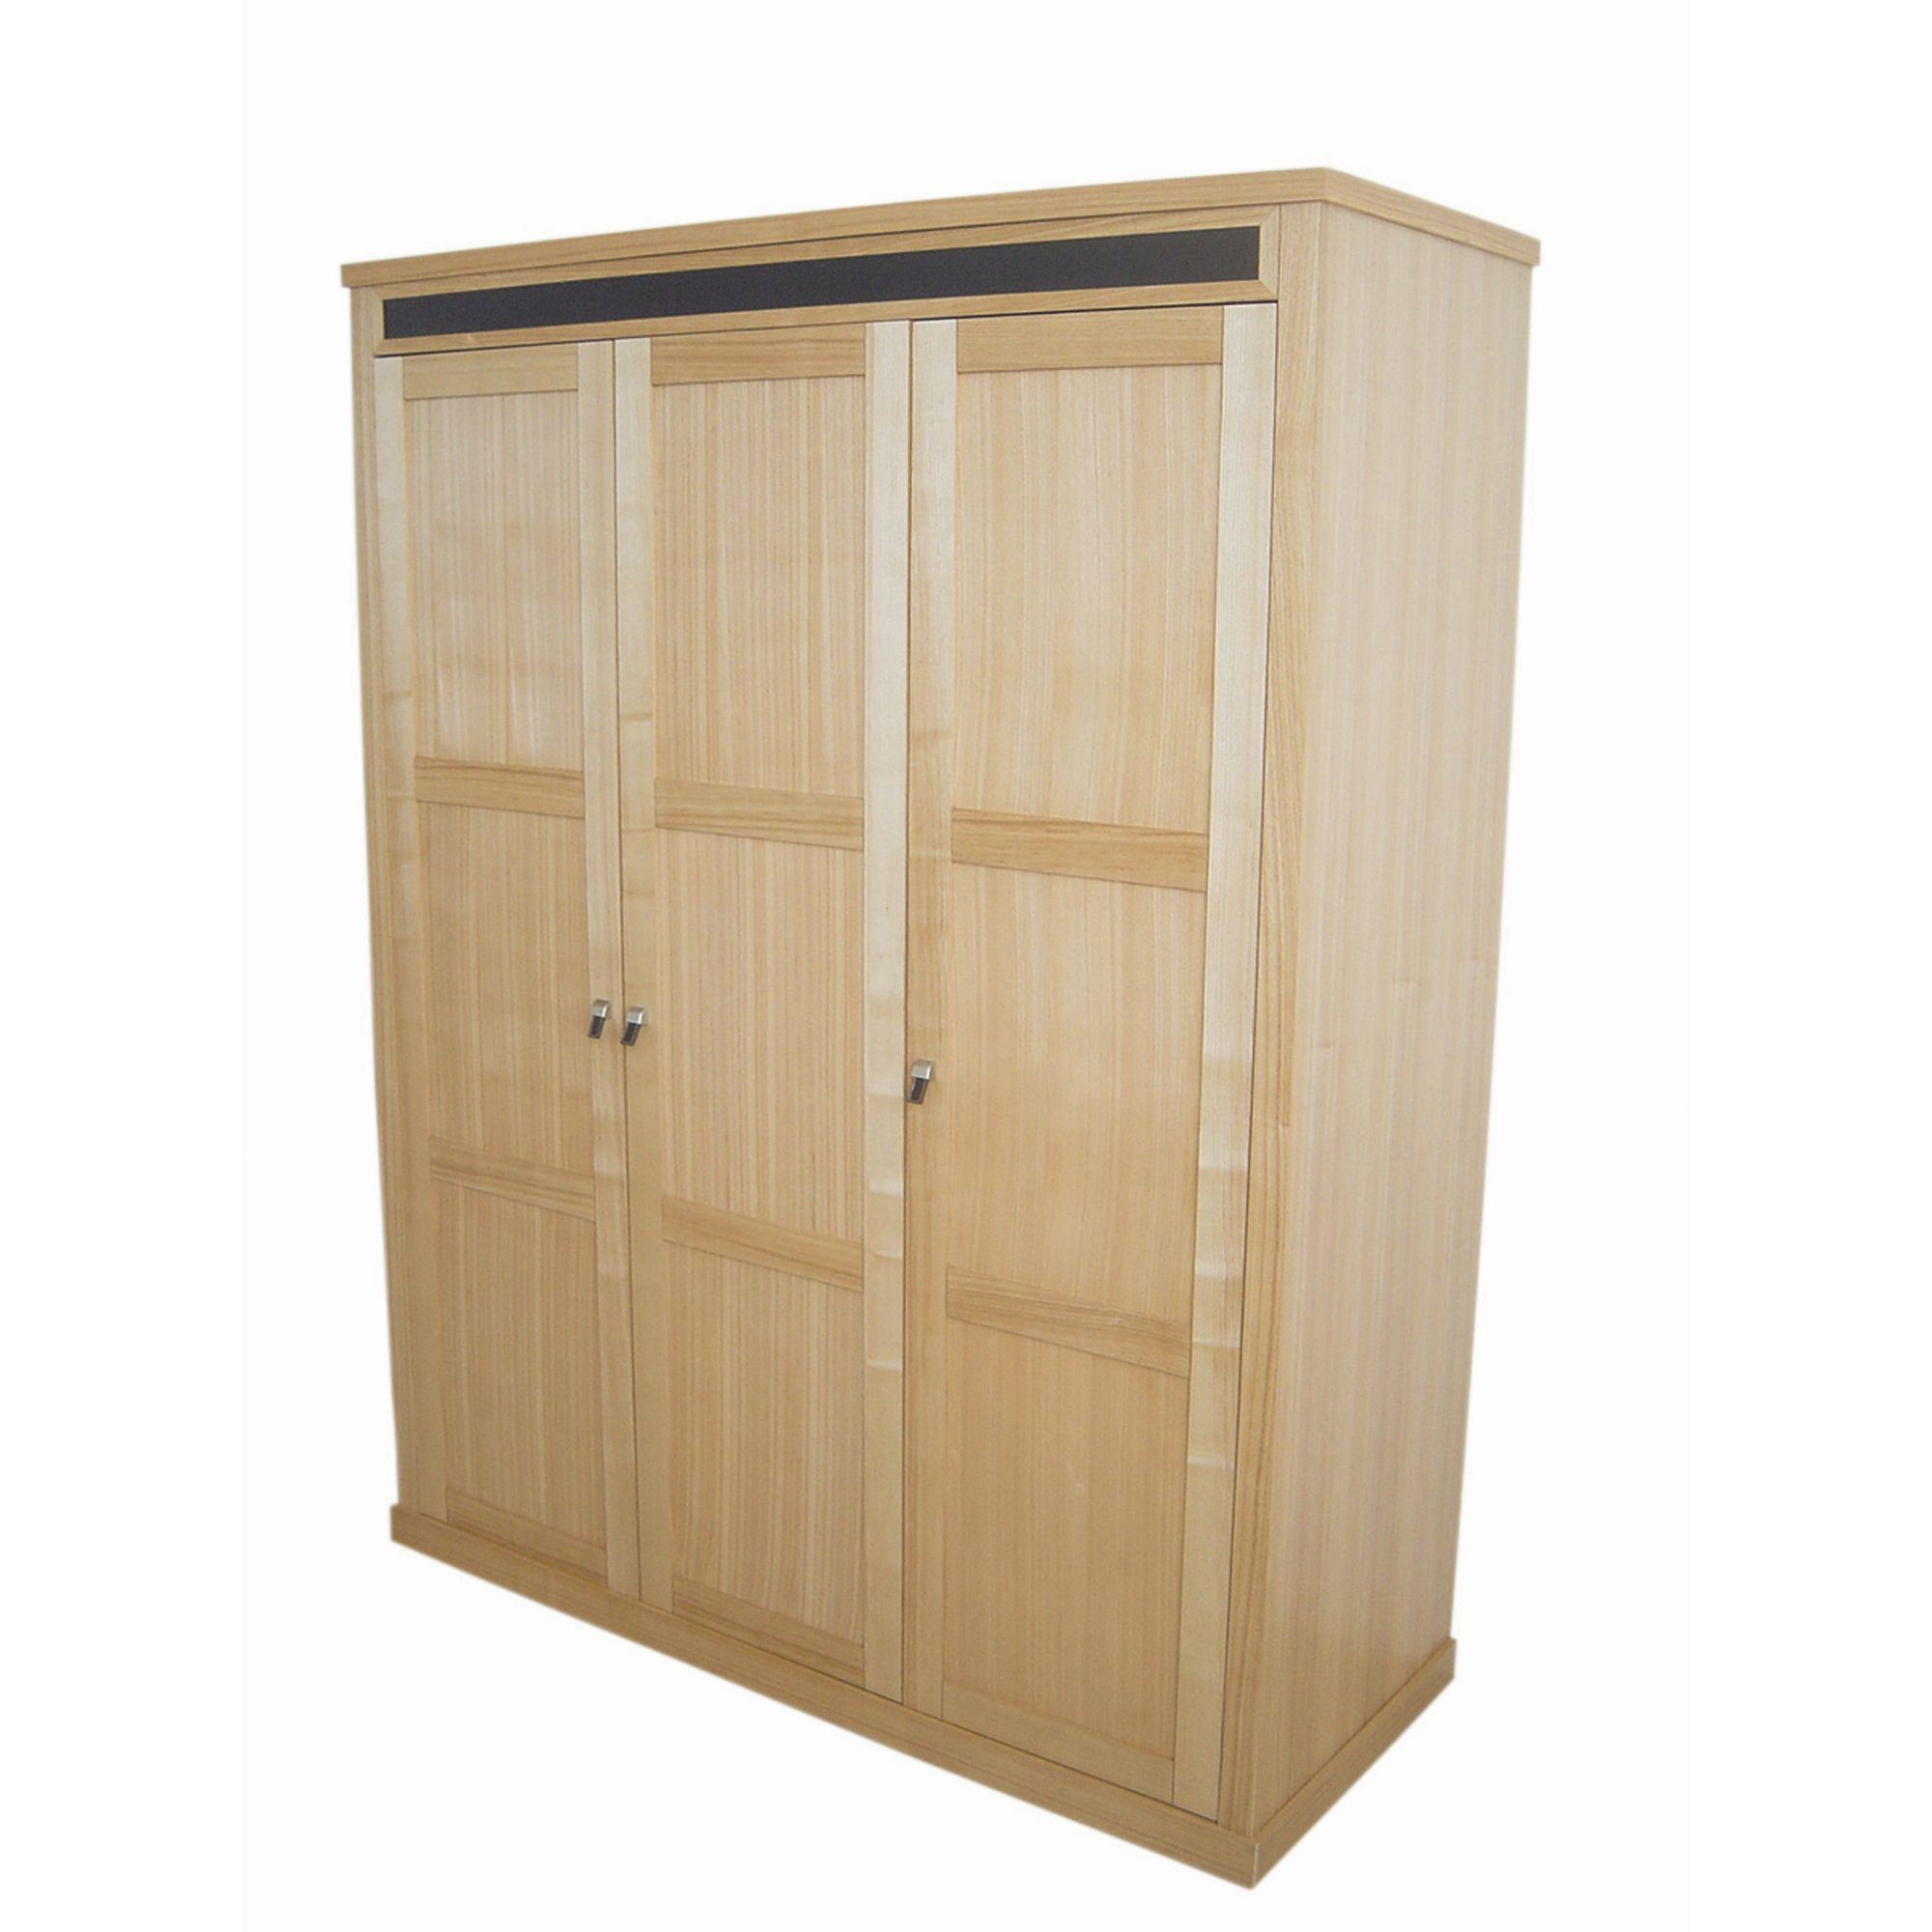 Home Zone Chelsea Three Door Wardrobe in Oak at Tesco Direct